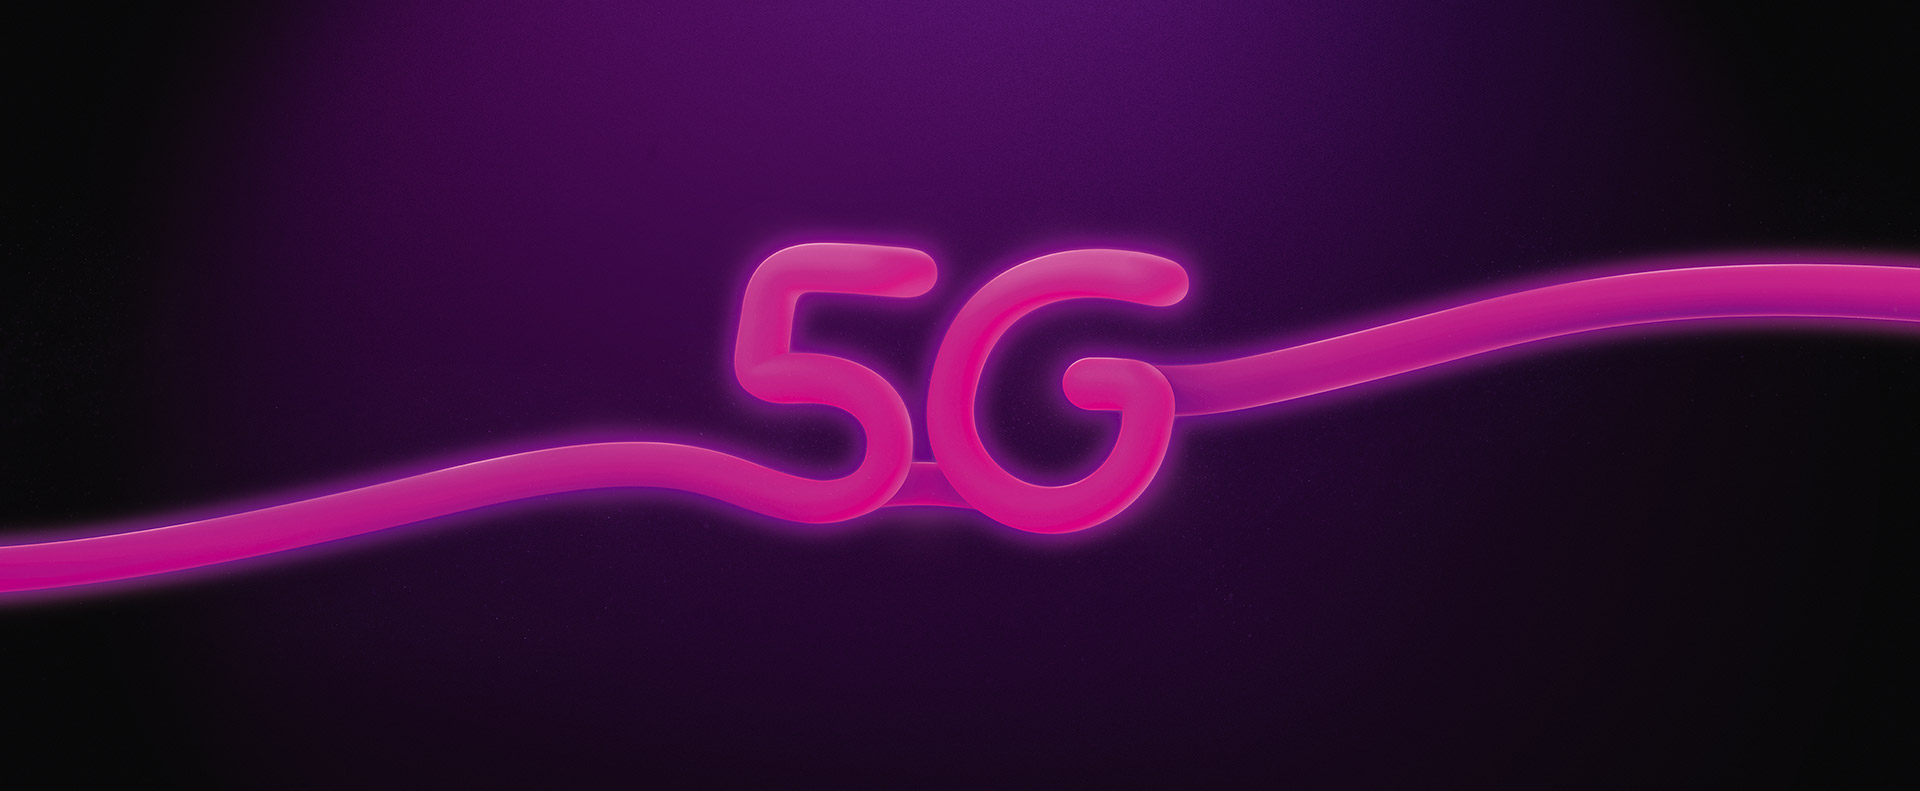 Identidade visual do 5G da Vivo